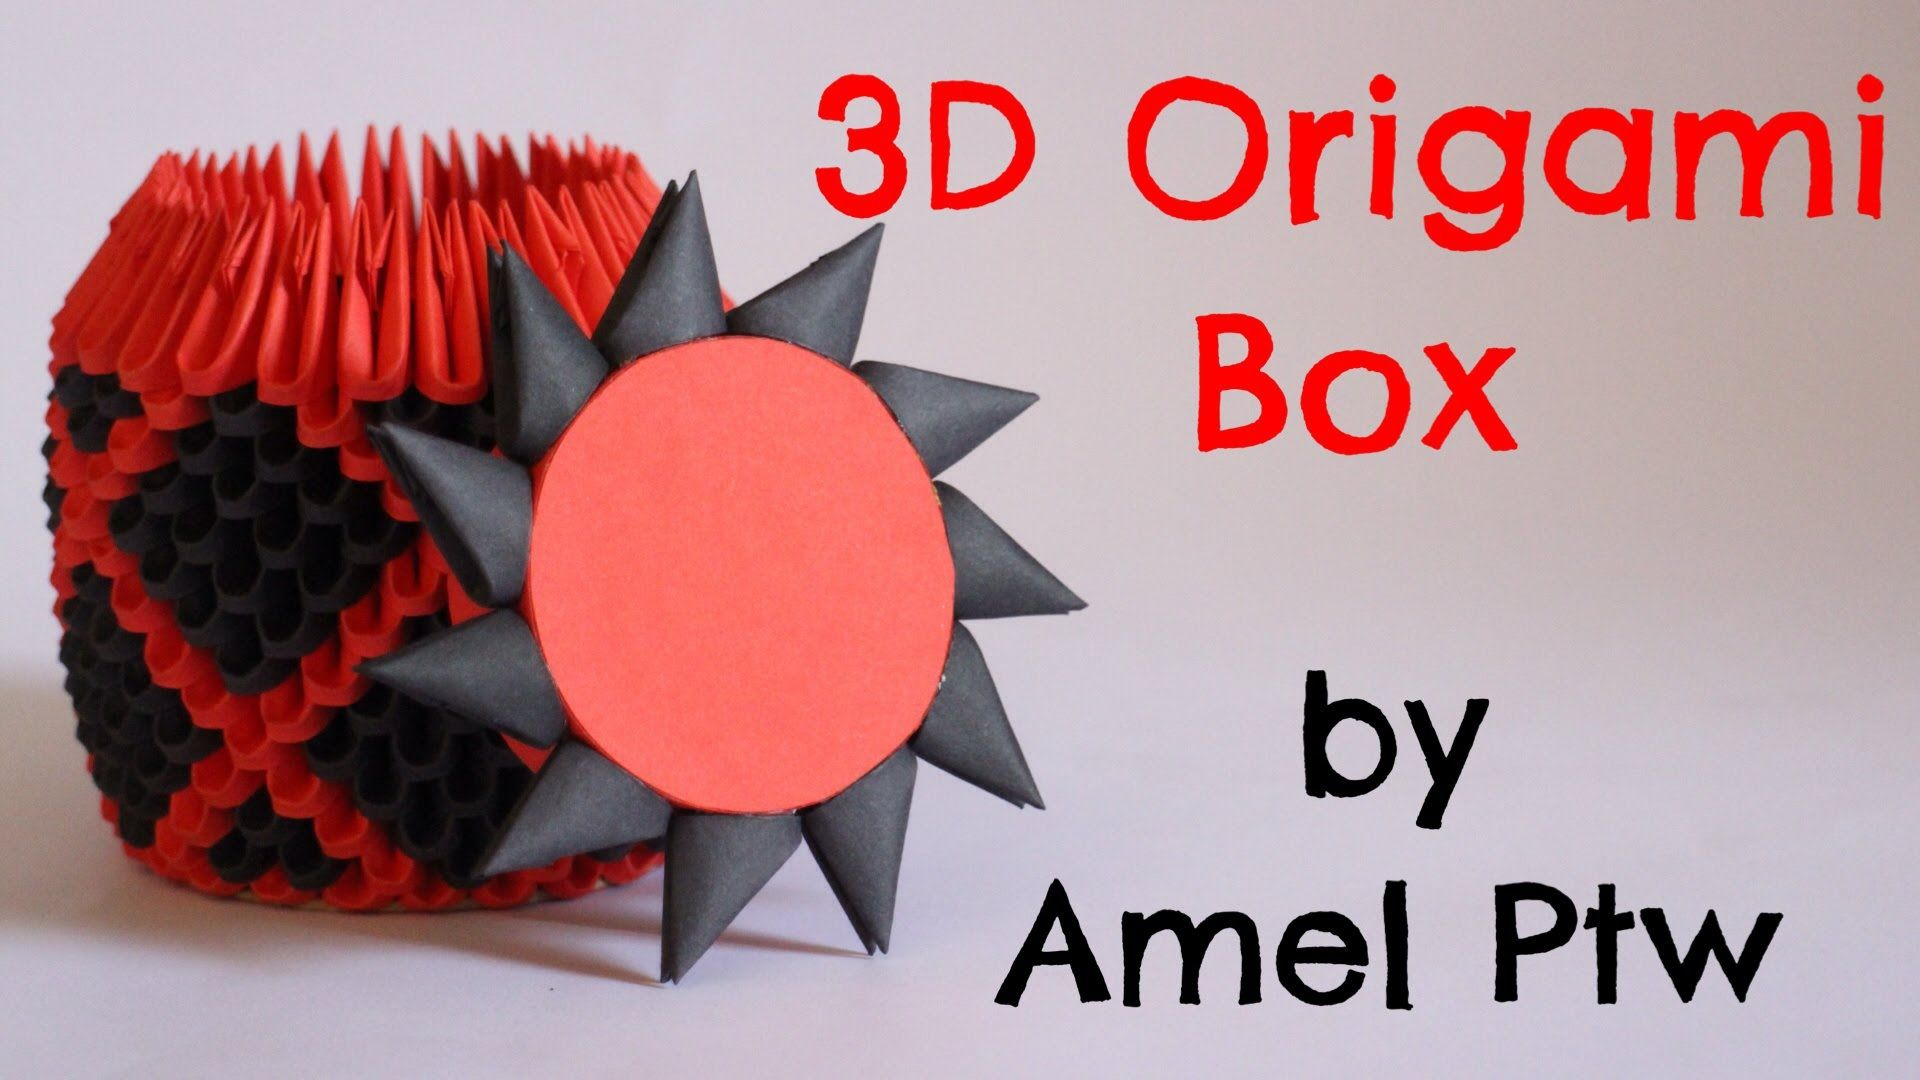 How To 3d Origami Box Model 2 Origami Box 3d Origami Origami